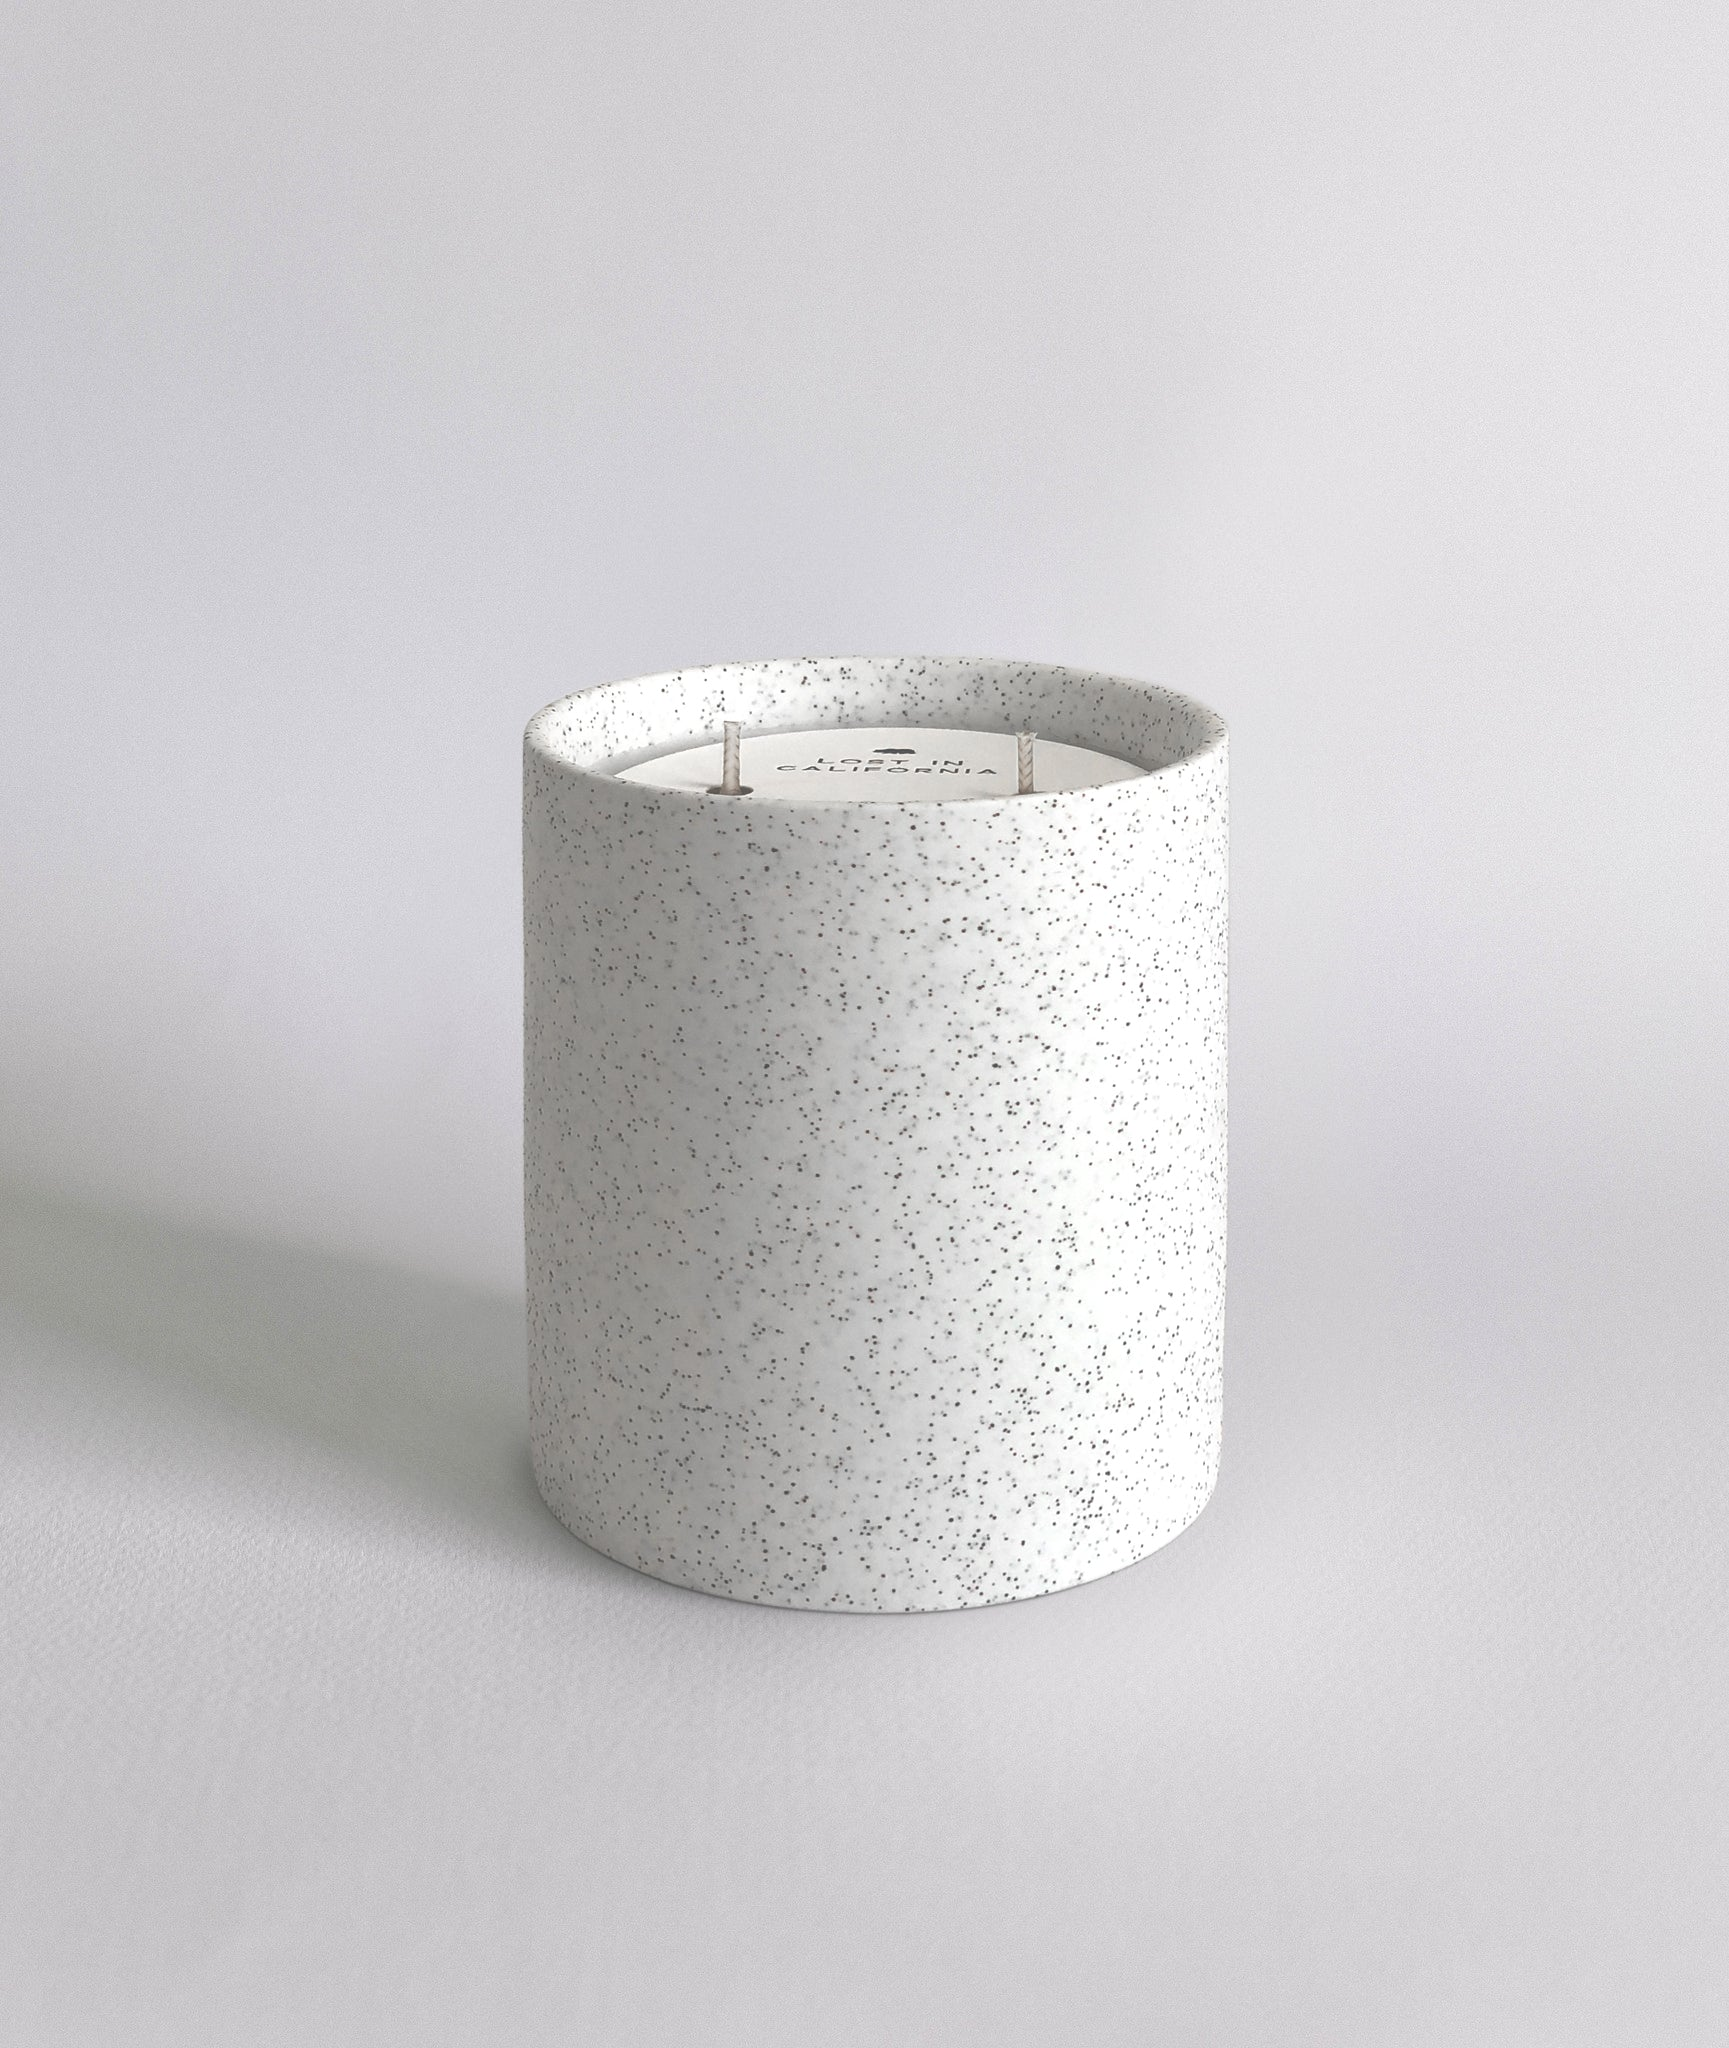 Cardiff Speckled Ceramic